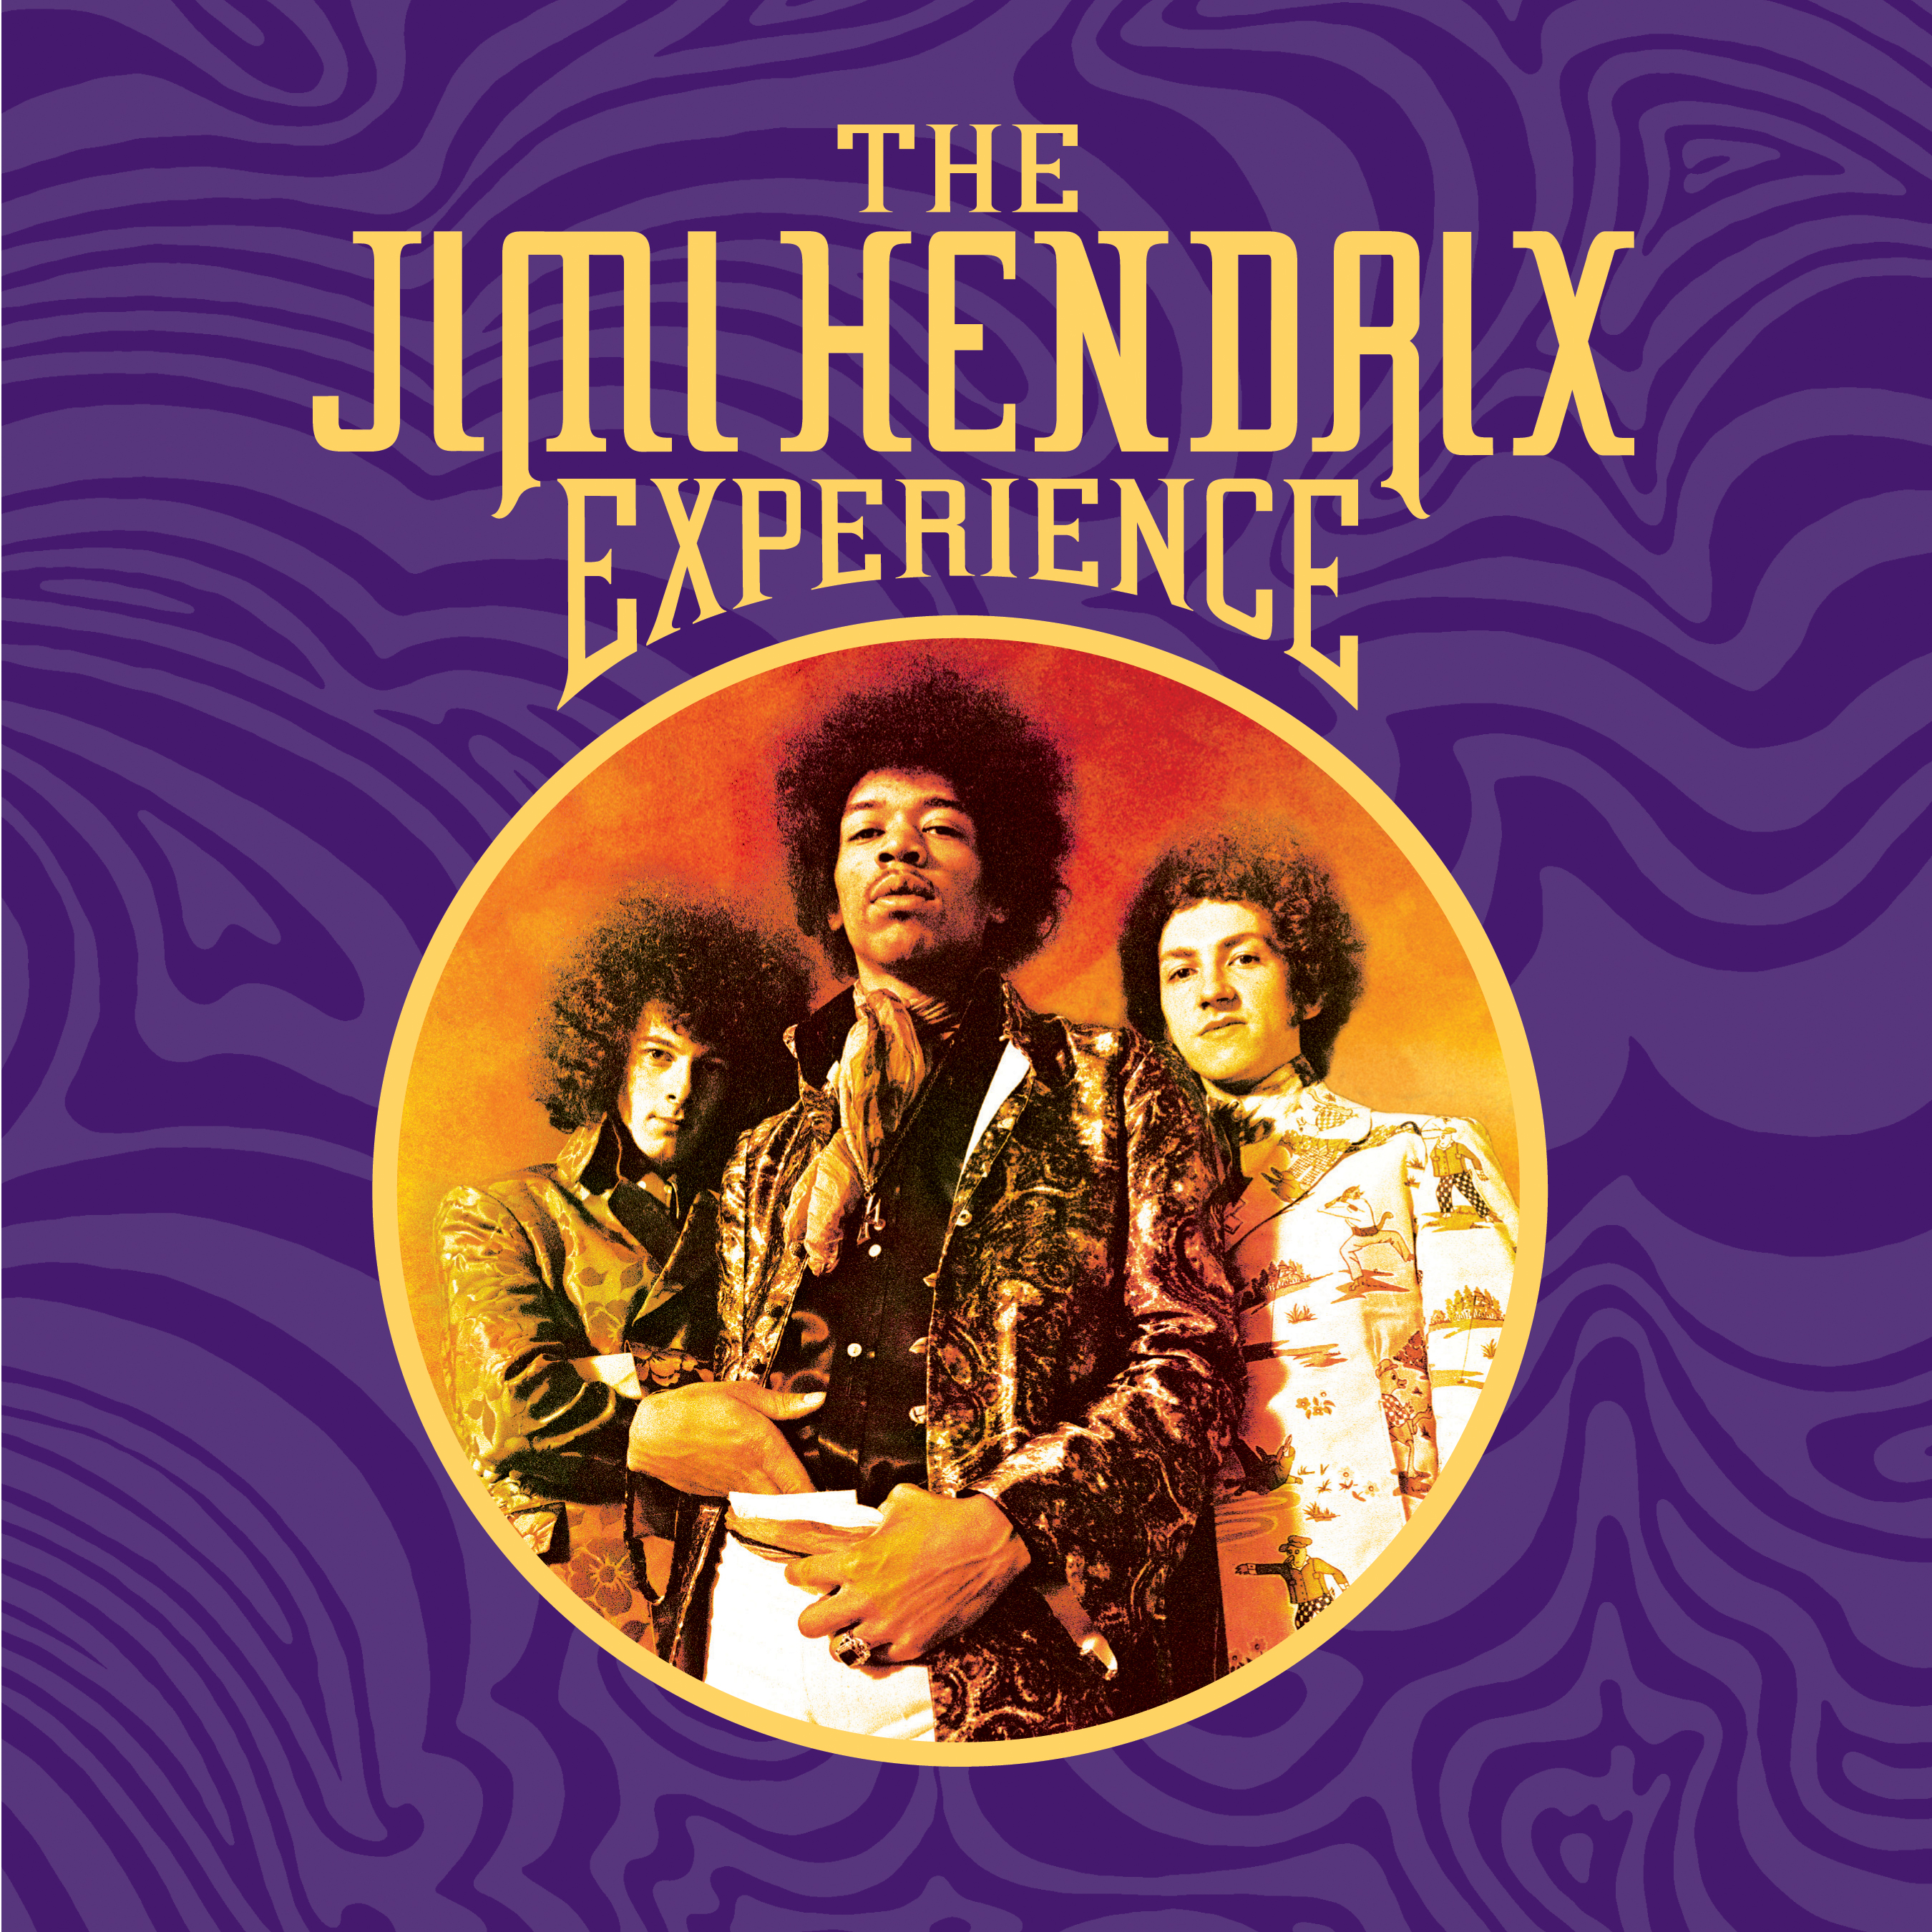 The Jimi Hendrix Experience Box Set The Official Jimi